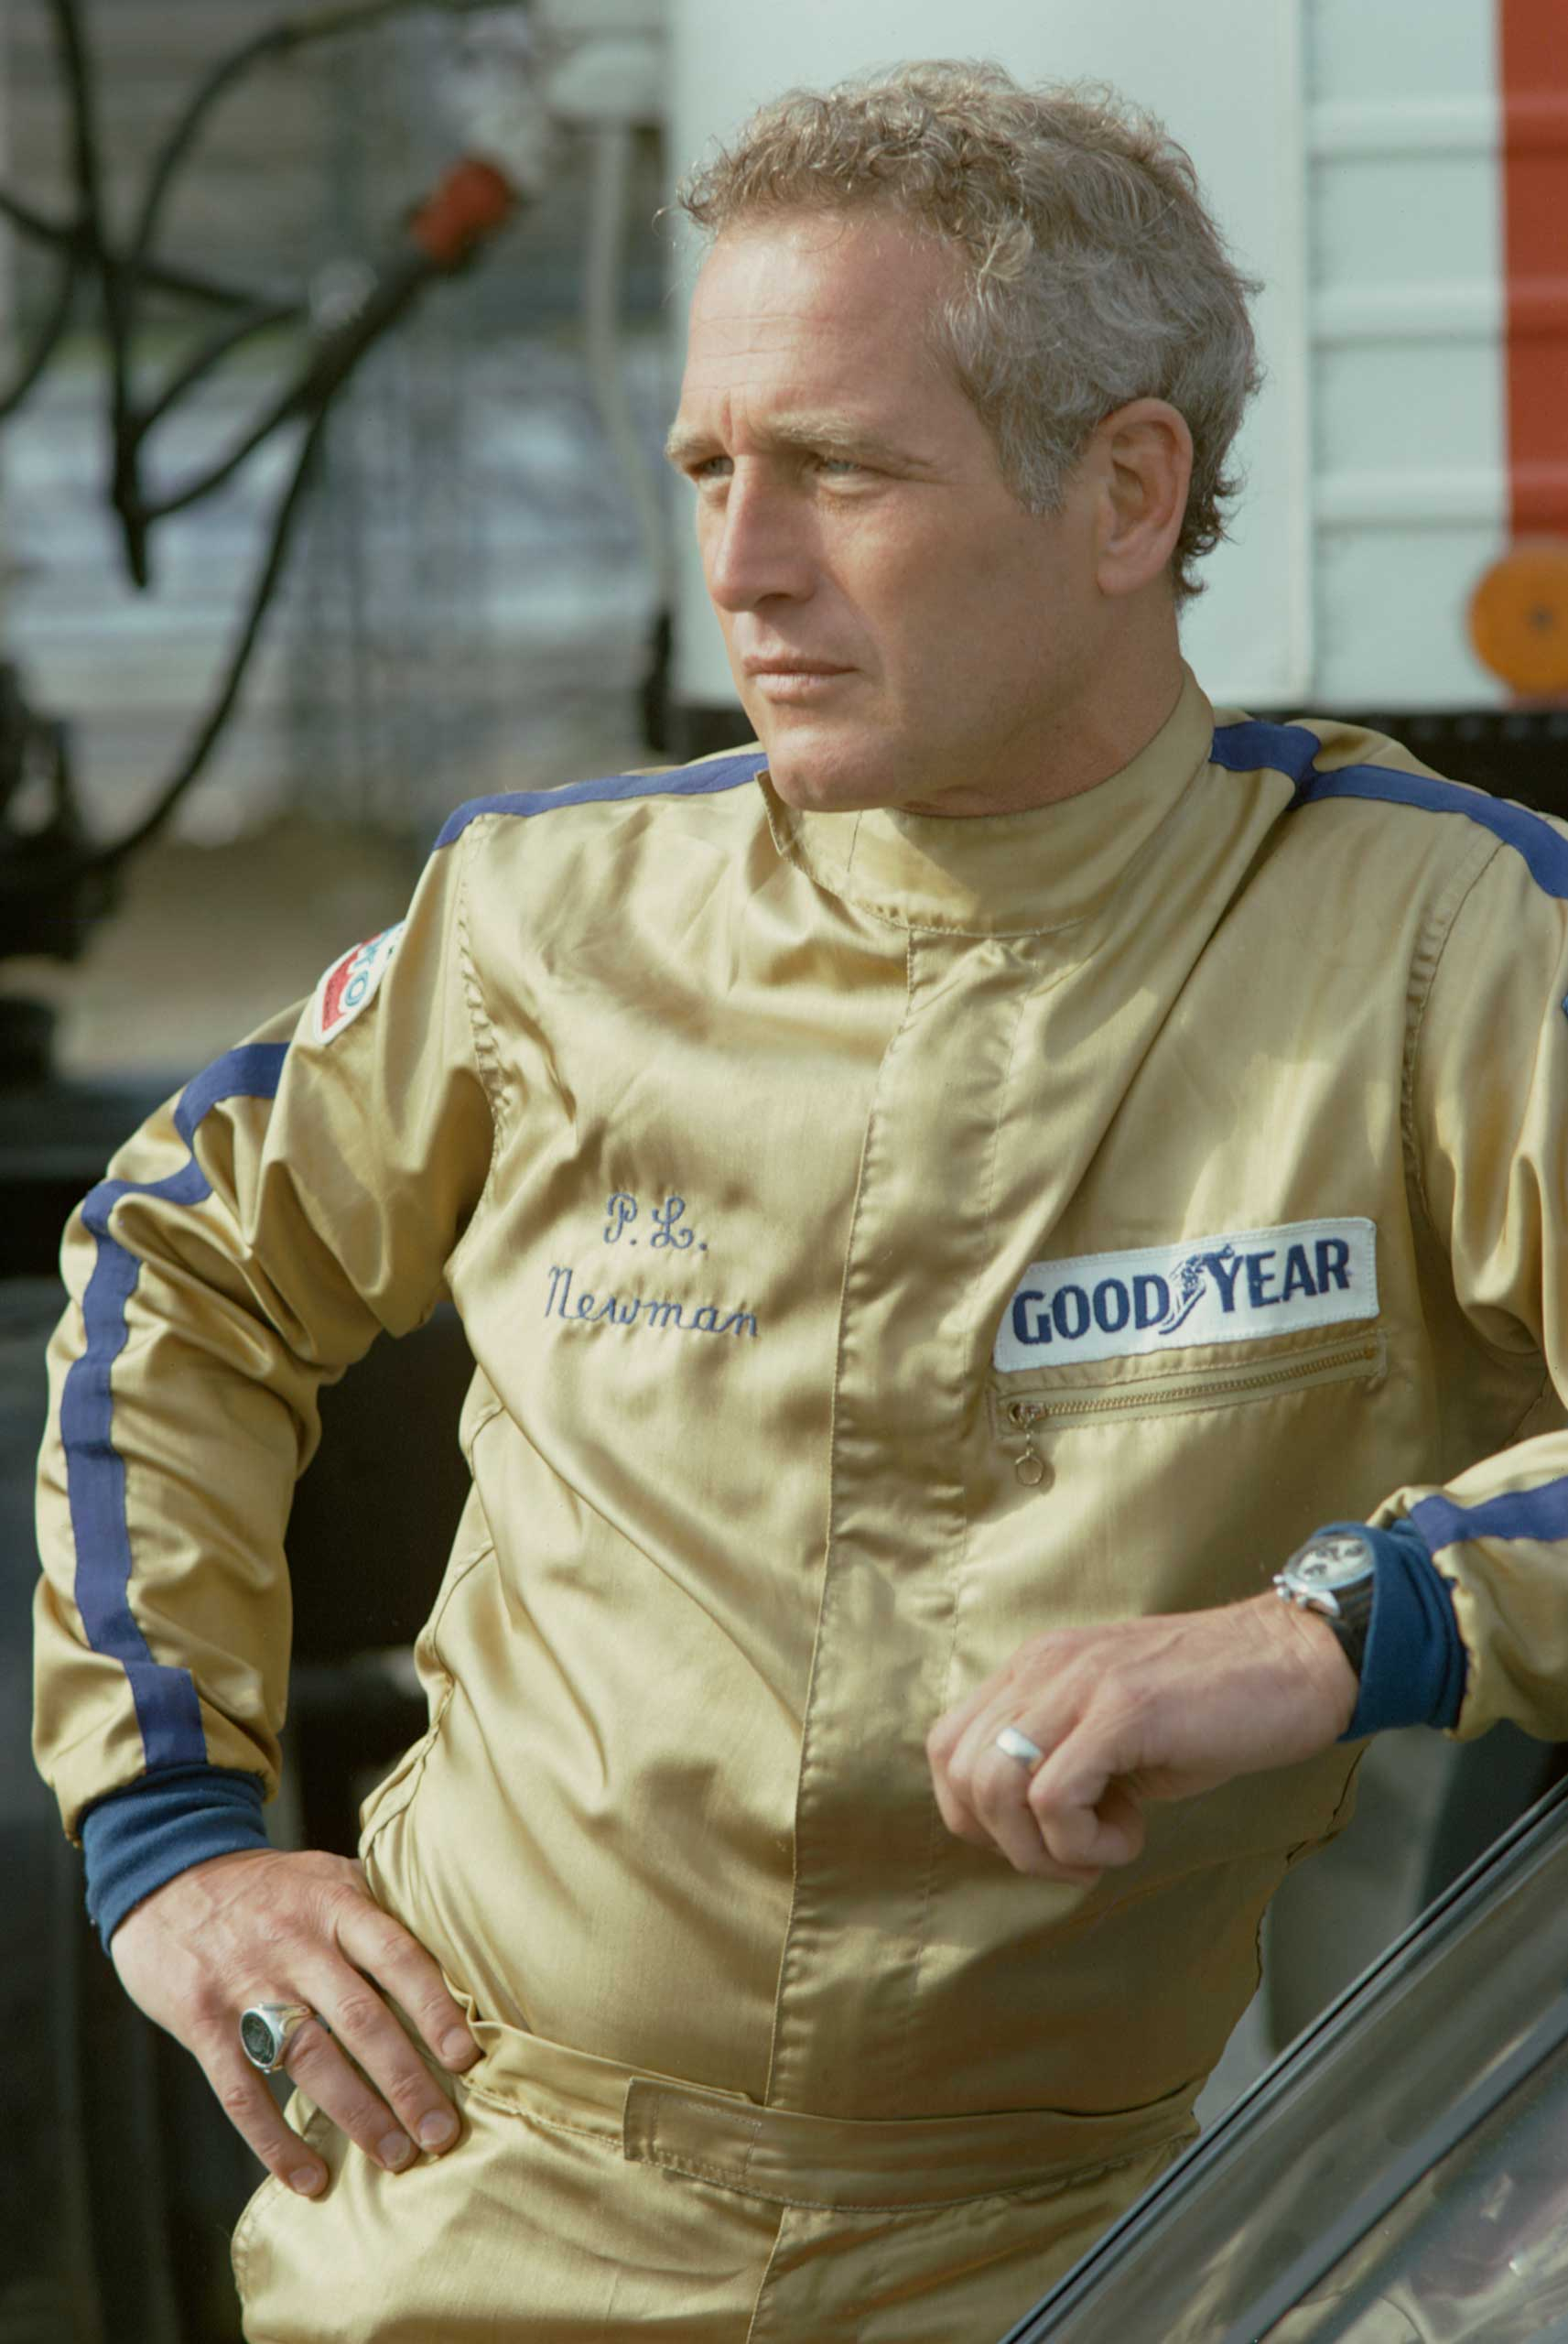 <b>Paul Newman</b>Photographed for TV Times in 1974.                                   The motorsport fanatic was snapped during an interview about his love of cars. He first took to the track for real after being cast in a 1969 racing film called <i>Winning</i>. A few years later, he came second in the famous Le Mans 24-Hour Race.